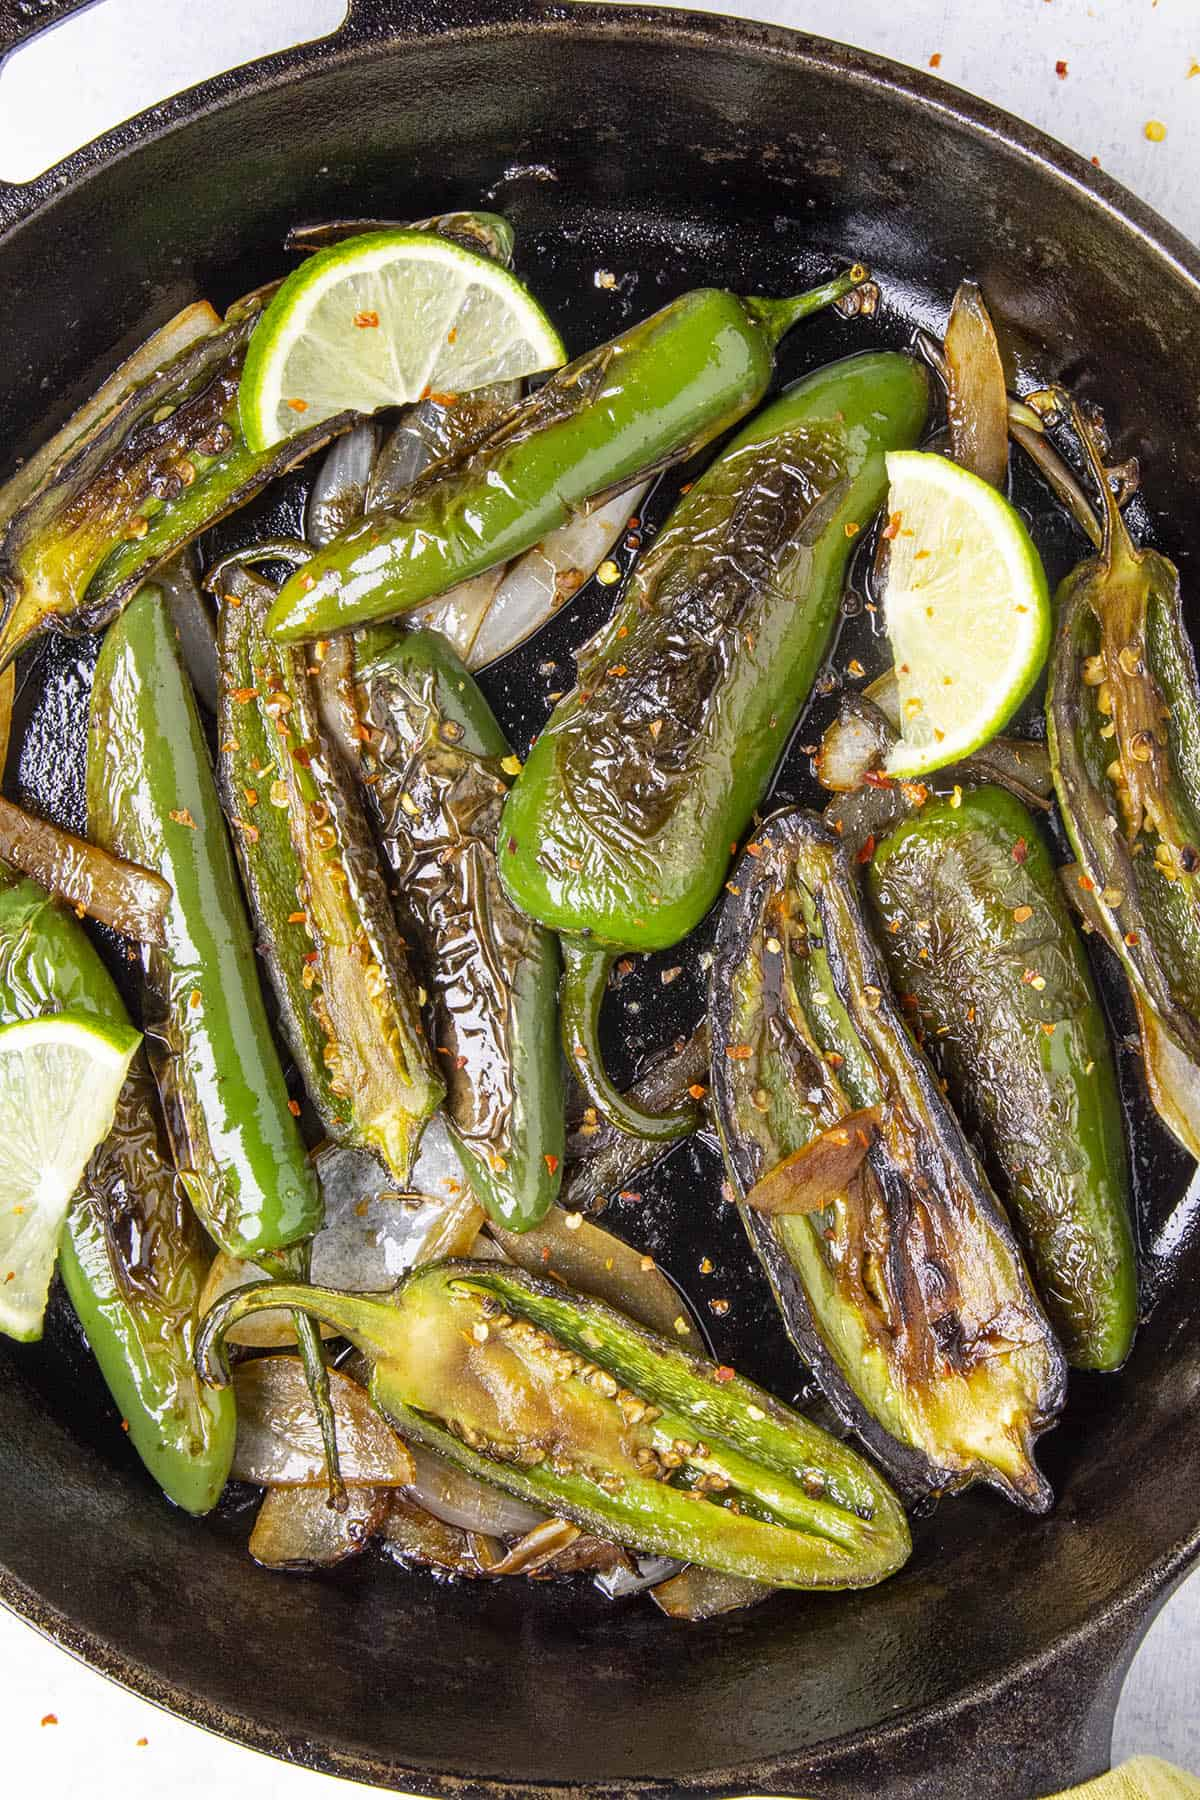 Chiles Toreados, or blistered chiles, in a pan, ready to serve